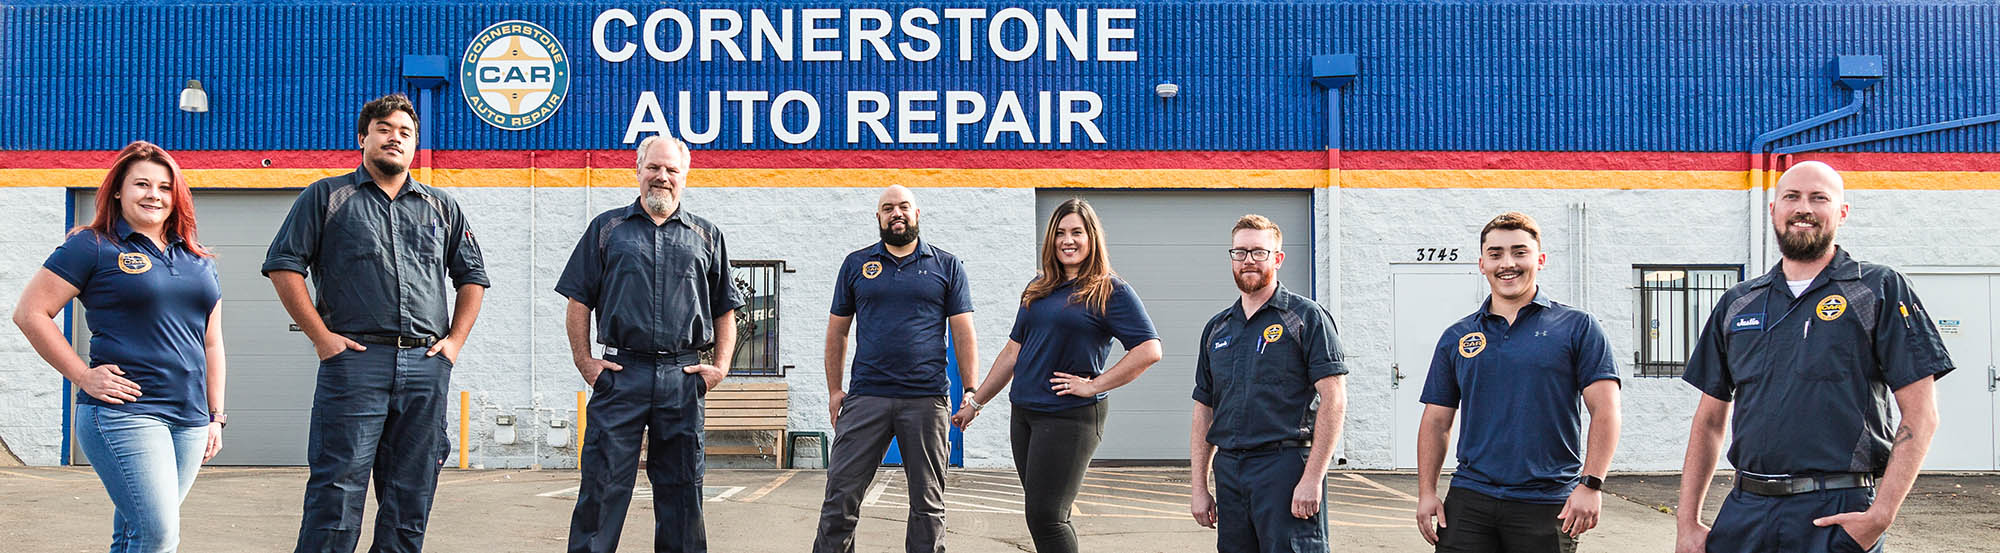 The whole team at Cornerstone Auto repair is ready to serve you